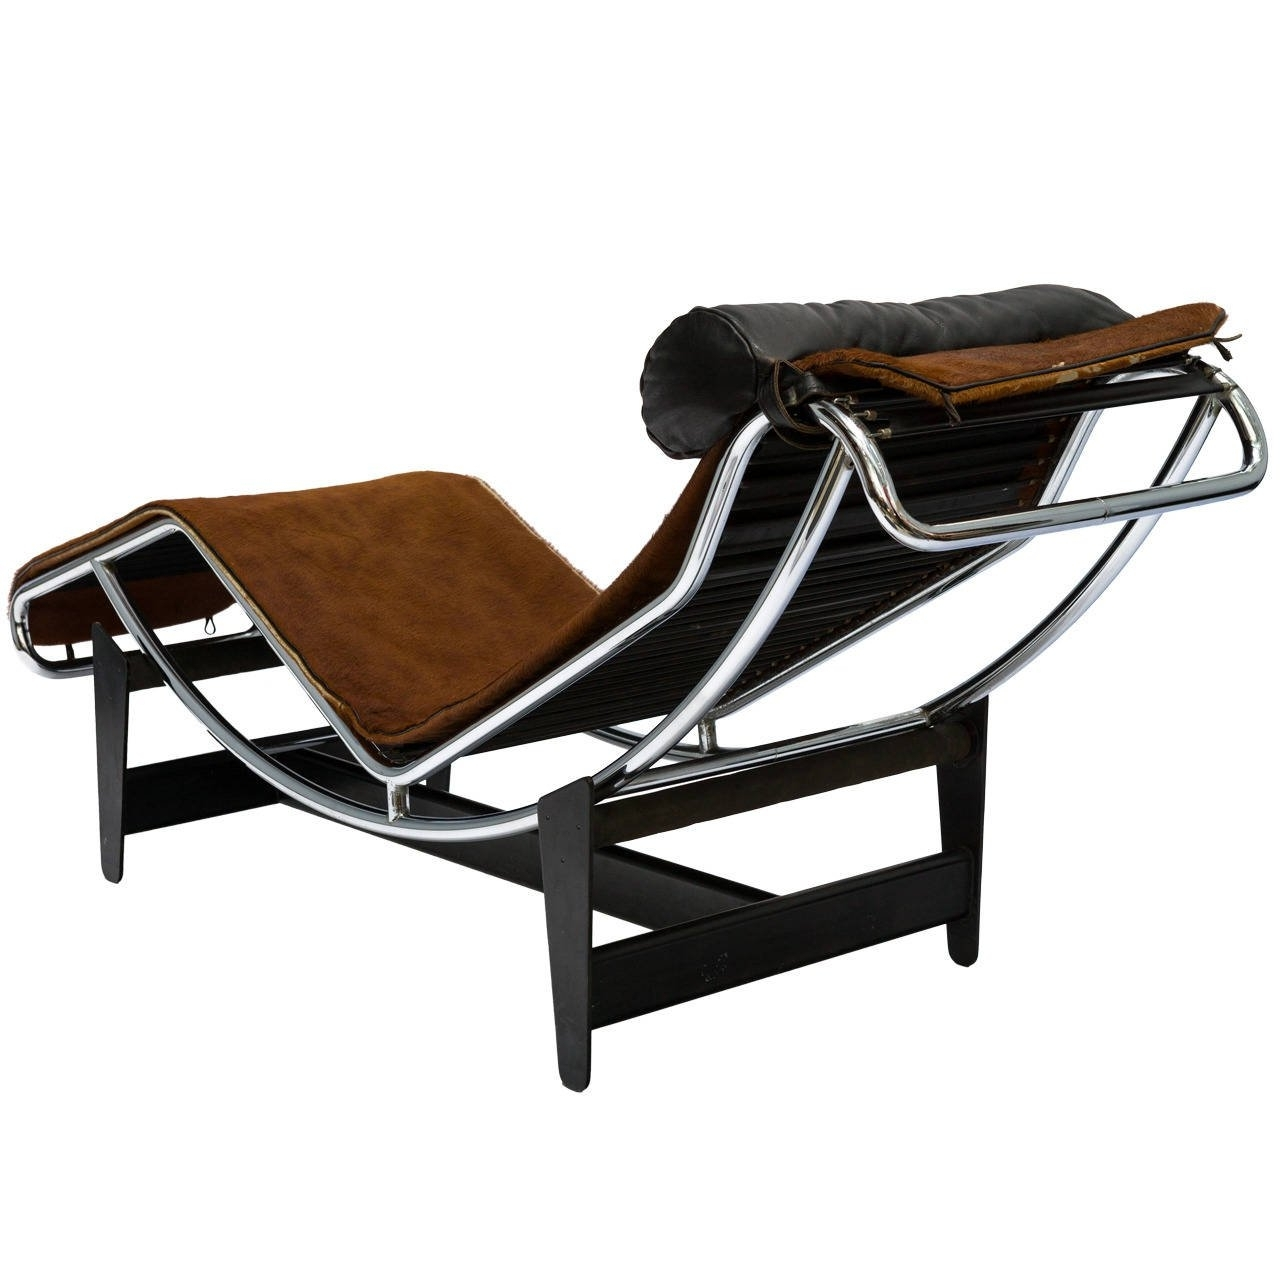 Corbusier Chaises Pertaining To Preferred Le Corbusier Lc4 Chaise Lounge Chair In Cowhide For Sale At 1Stdibs (View 14 of 15)